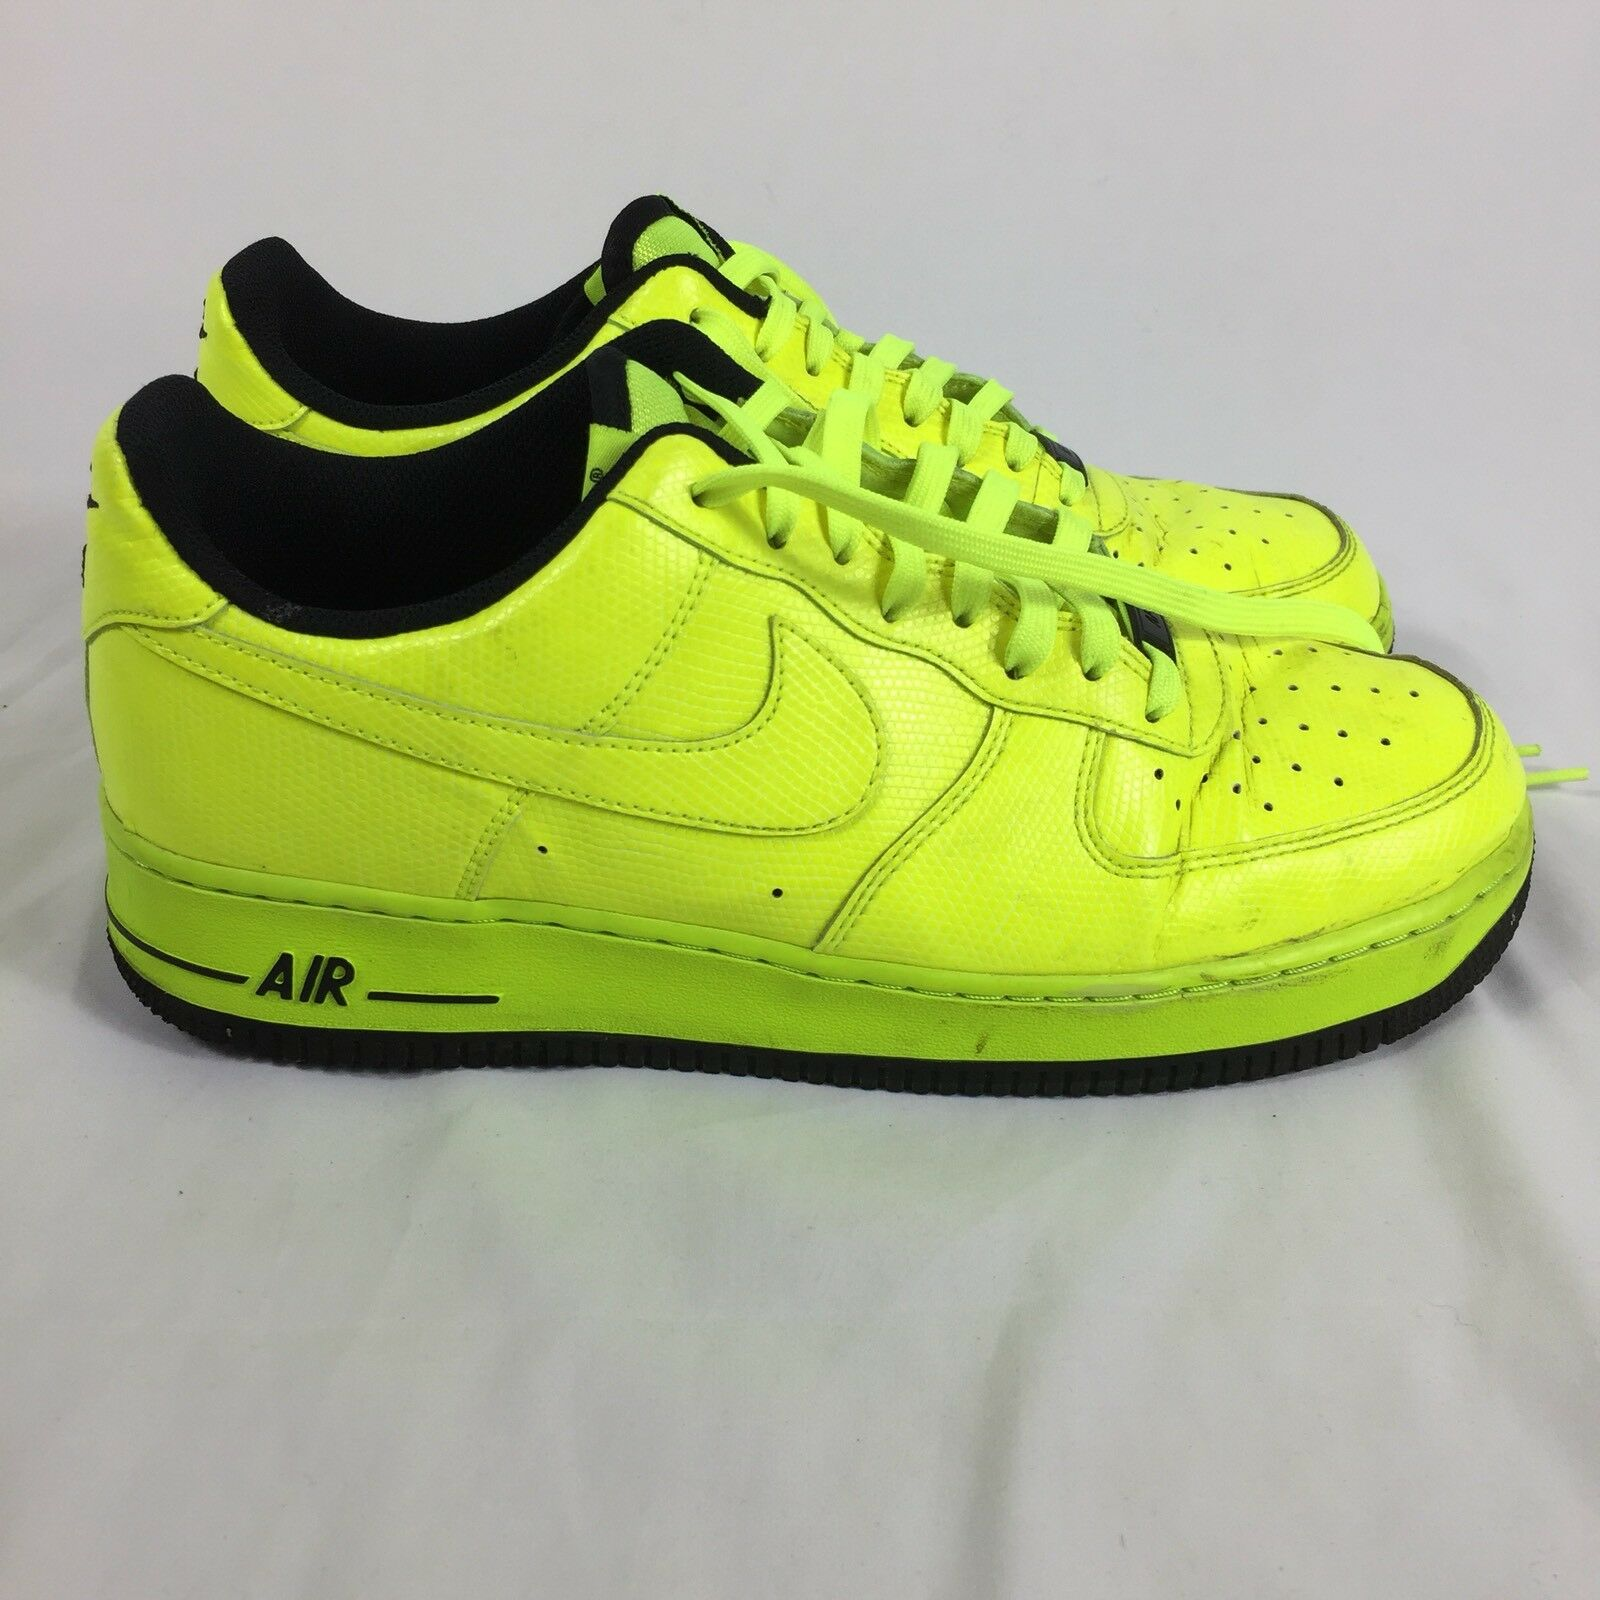 c5f70788f16ff Nike Air Force 1 Neon Yellow Sneakers Gym Basketball Shoes Shoes Shoes Size  10.5 US 44.5 EUR 279984